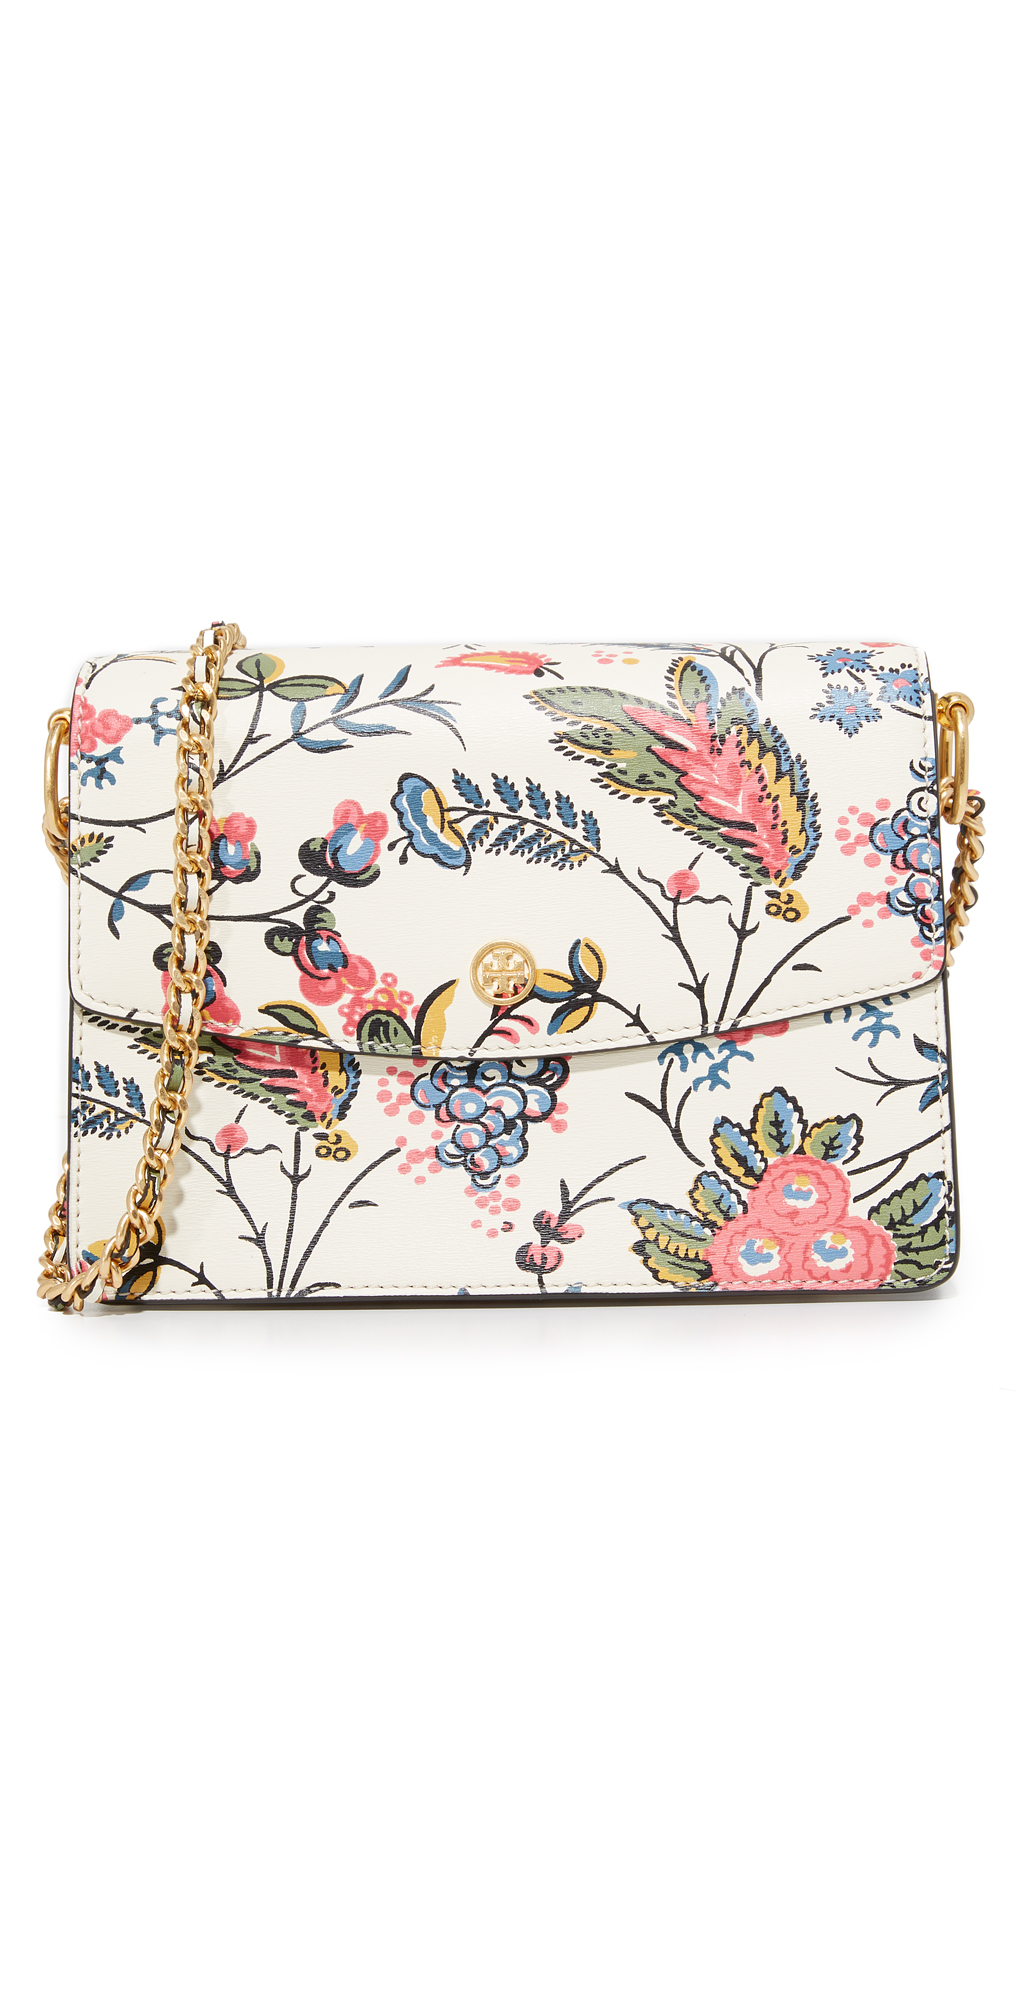 Floral Parker Shoulder Bag Tory Burch